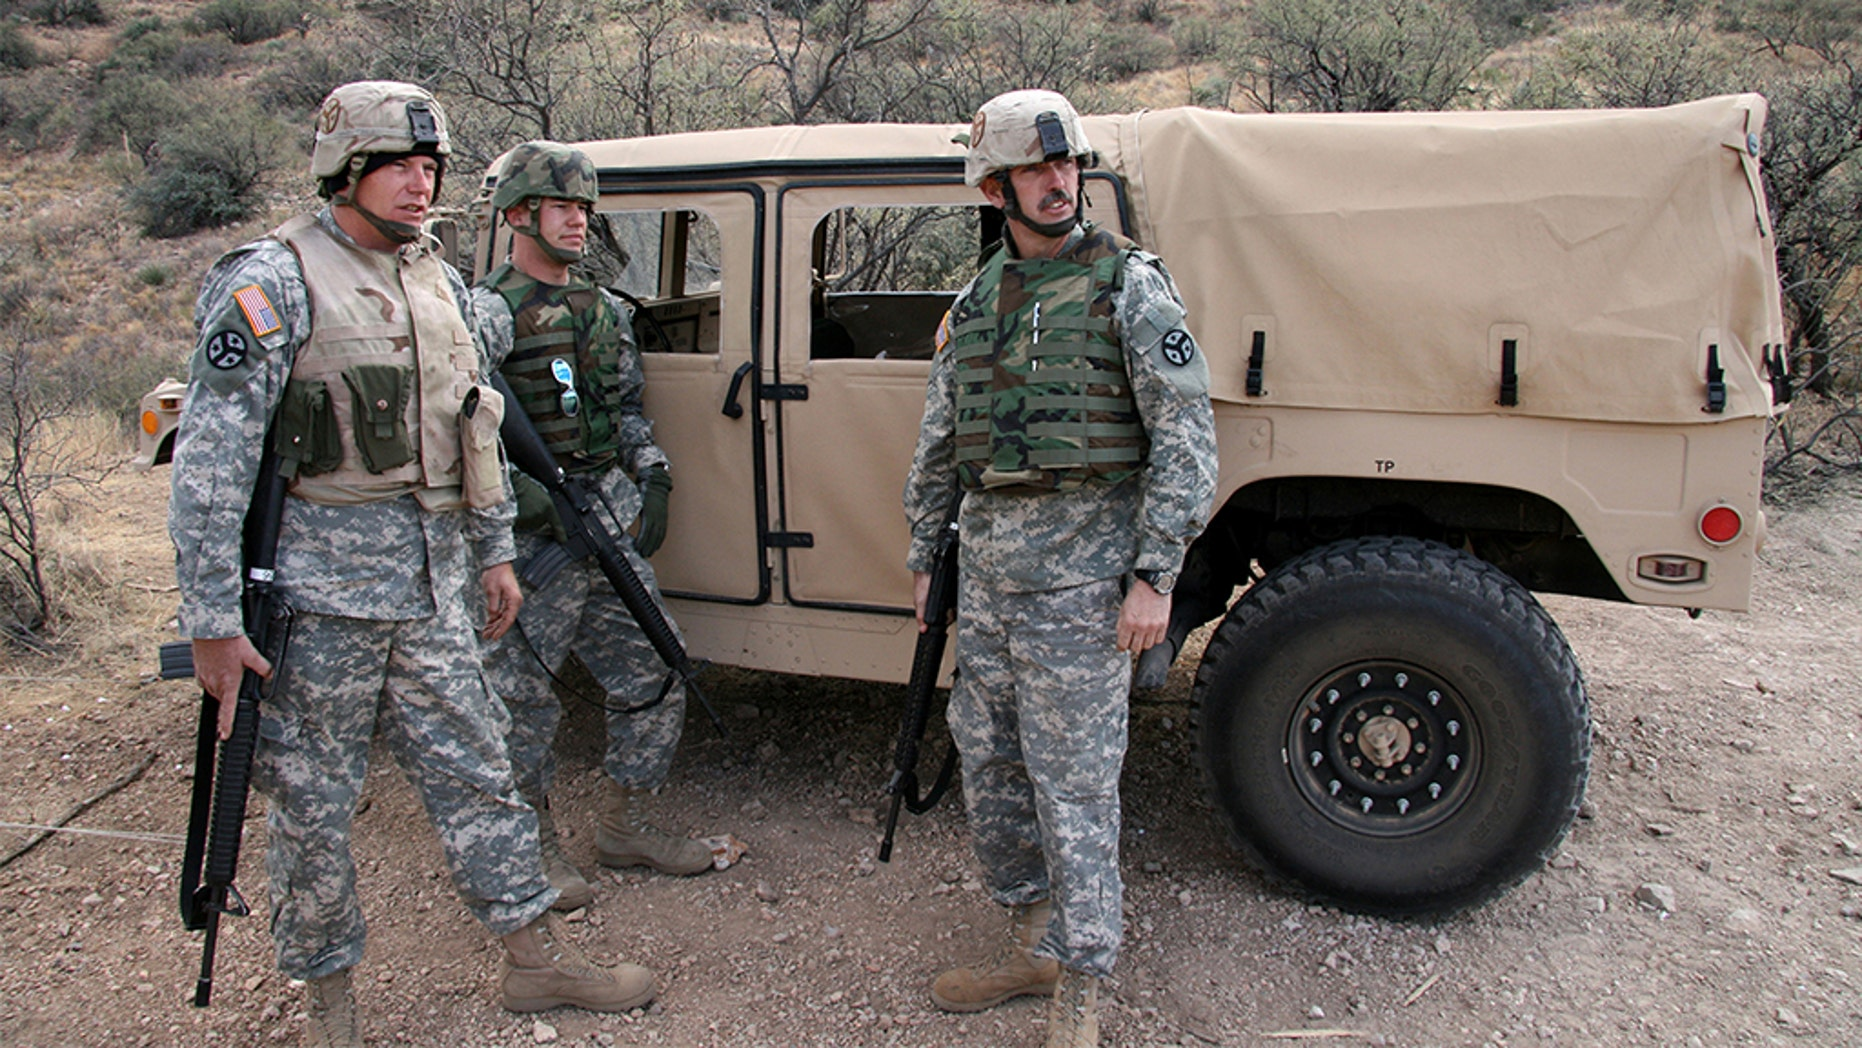 Soldiers from the Tennessee Army National Guard keep an eye out for signs of illegal activity along the U.S./Mexico border in the Sasabe District of Arizona Jan. 19. (Photo Credit: Sgt. 1st Class Gordon Hyde)